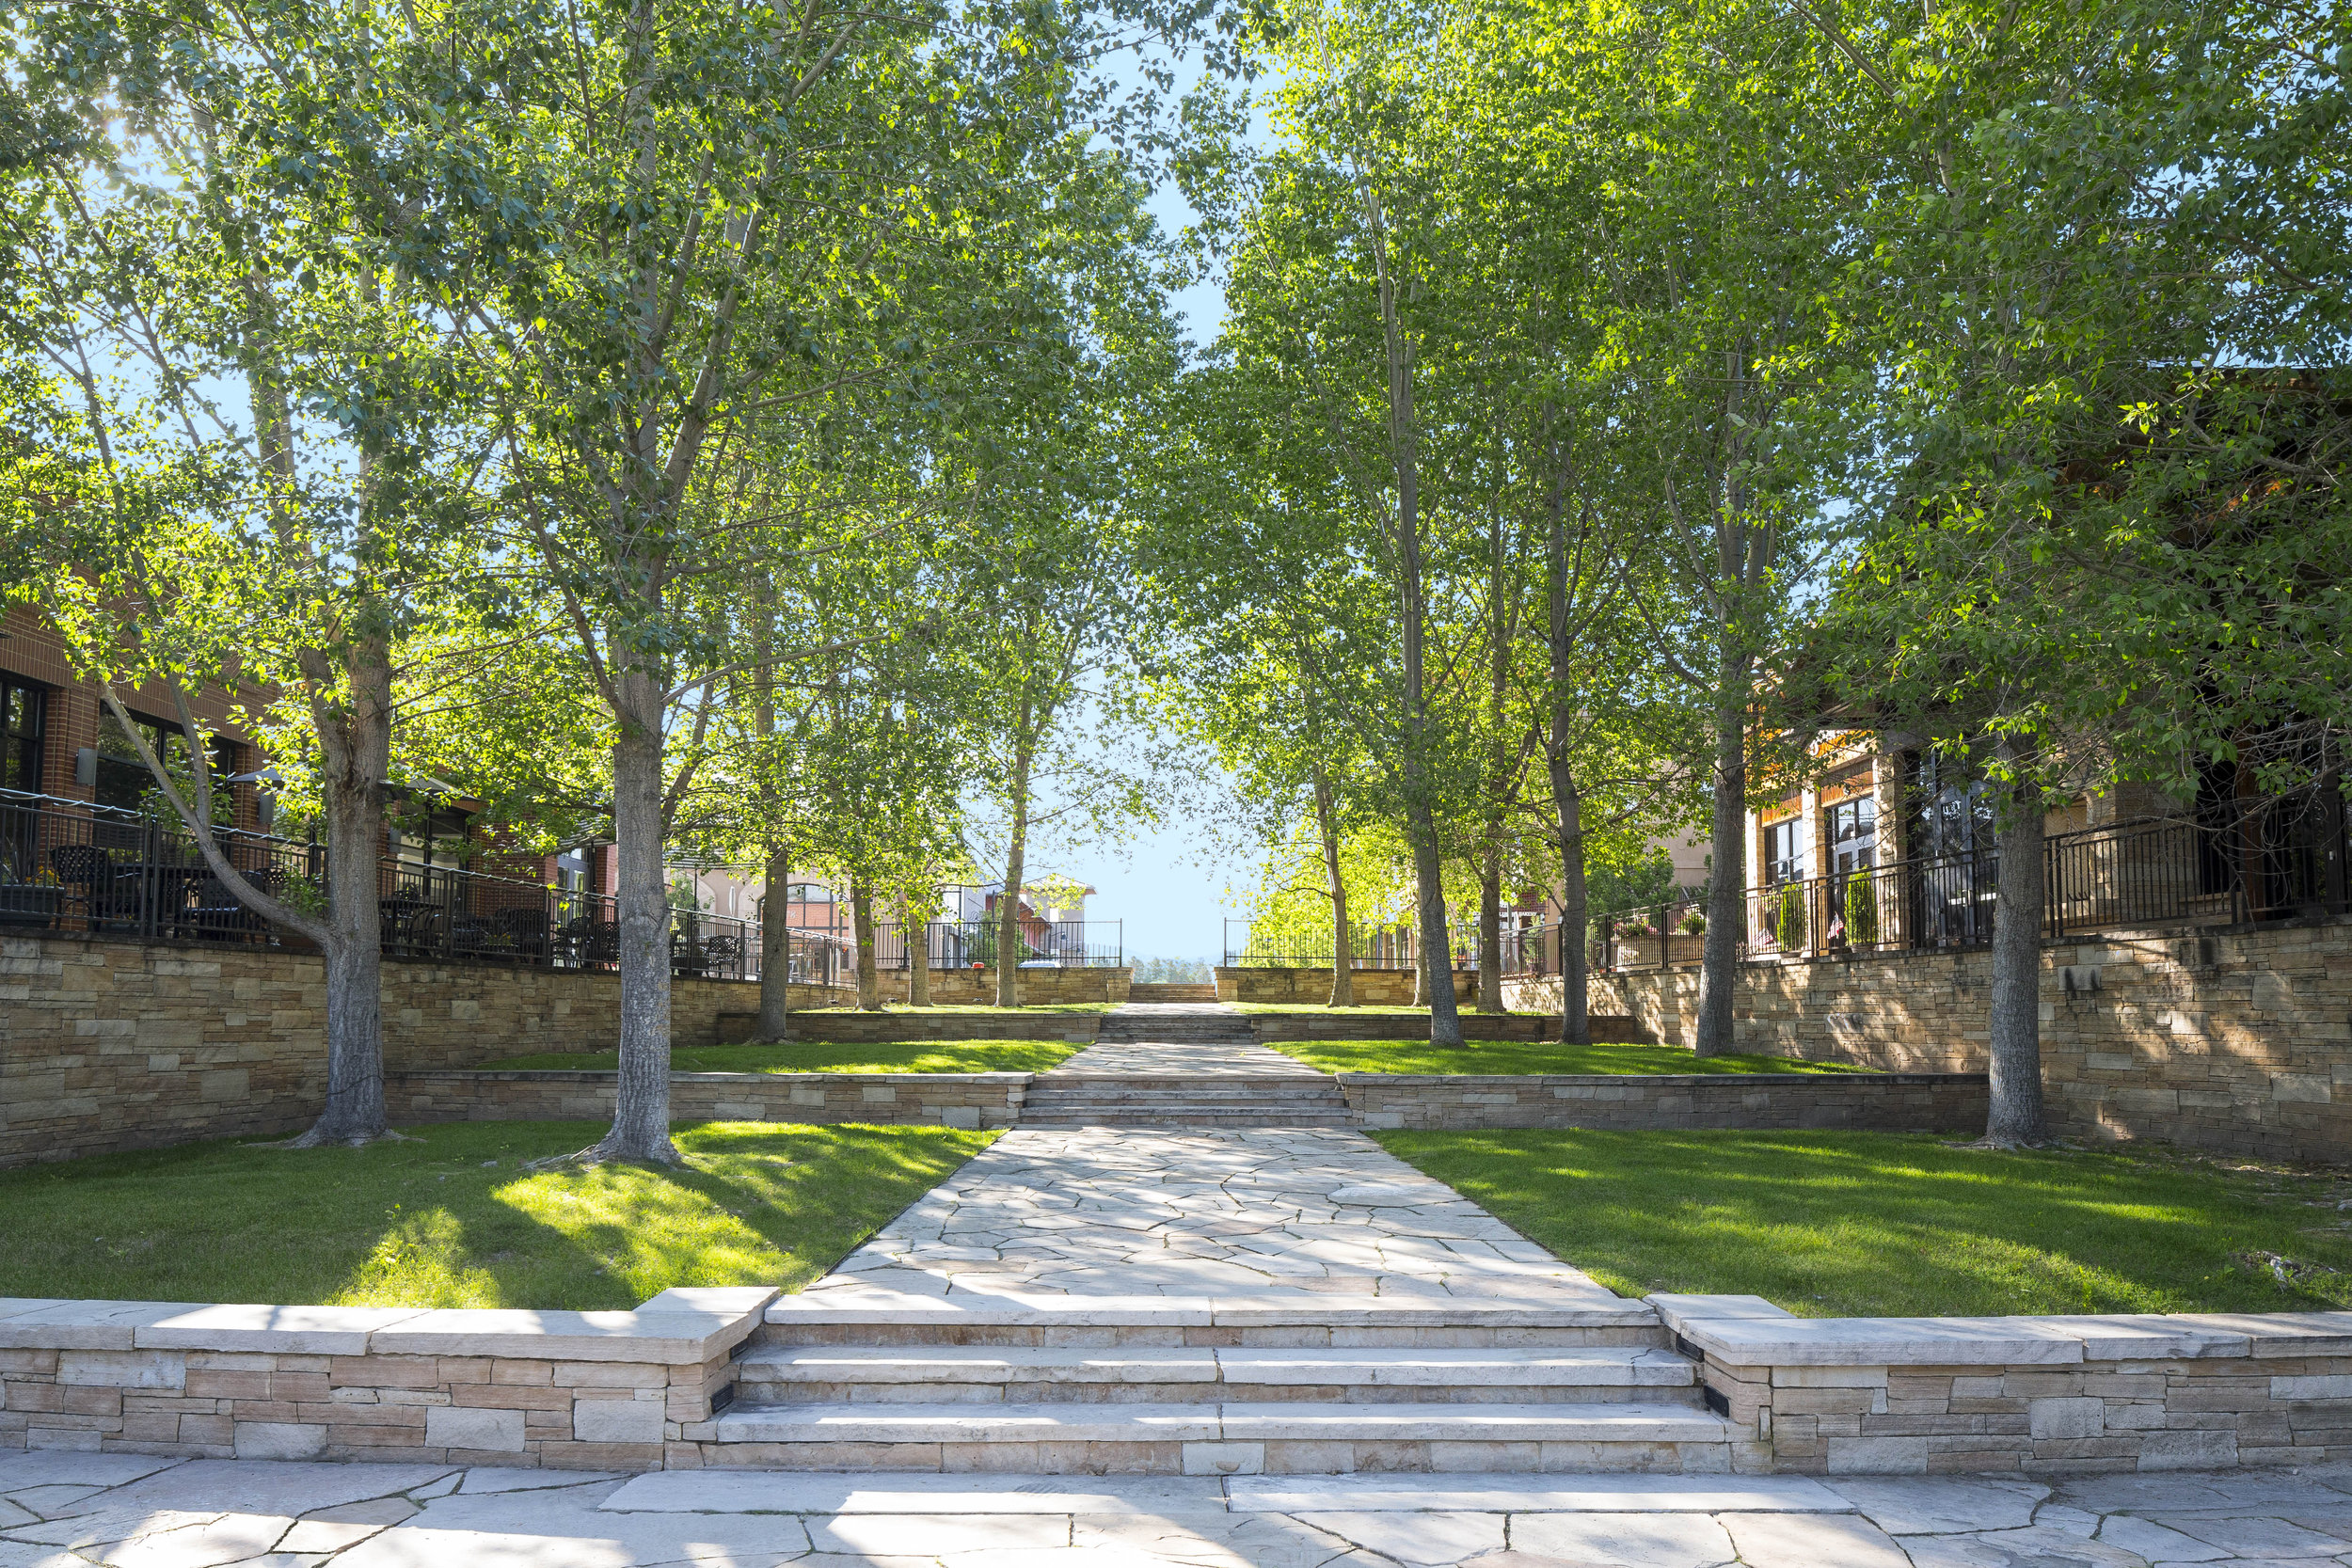 <f>Services</f><f>UrbanDesign</f><f>Services</f><f>Planning</f><f>Markets</f><f>Commercial+MixedUse</f><t>Village at Castle Pines</t><m>Castle Pines, CO</m>